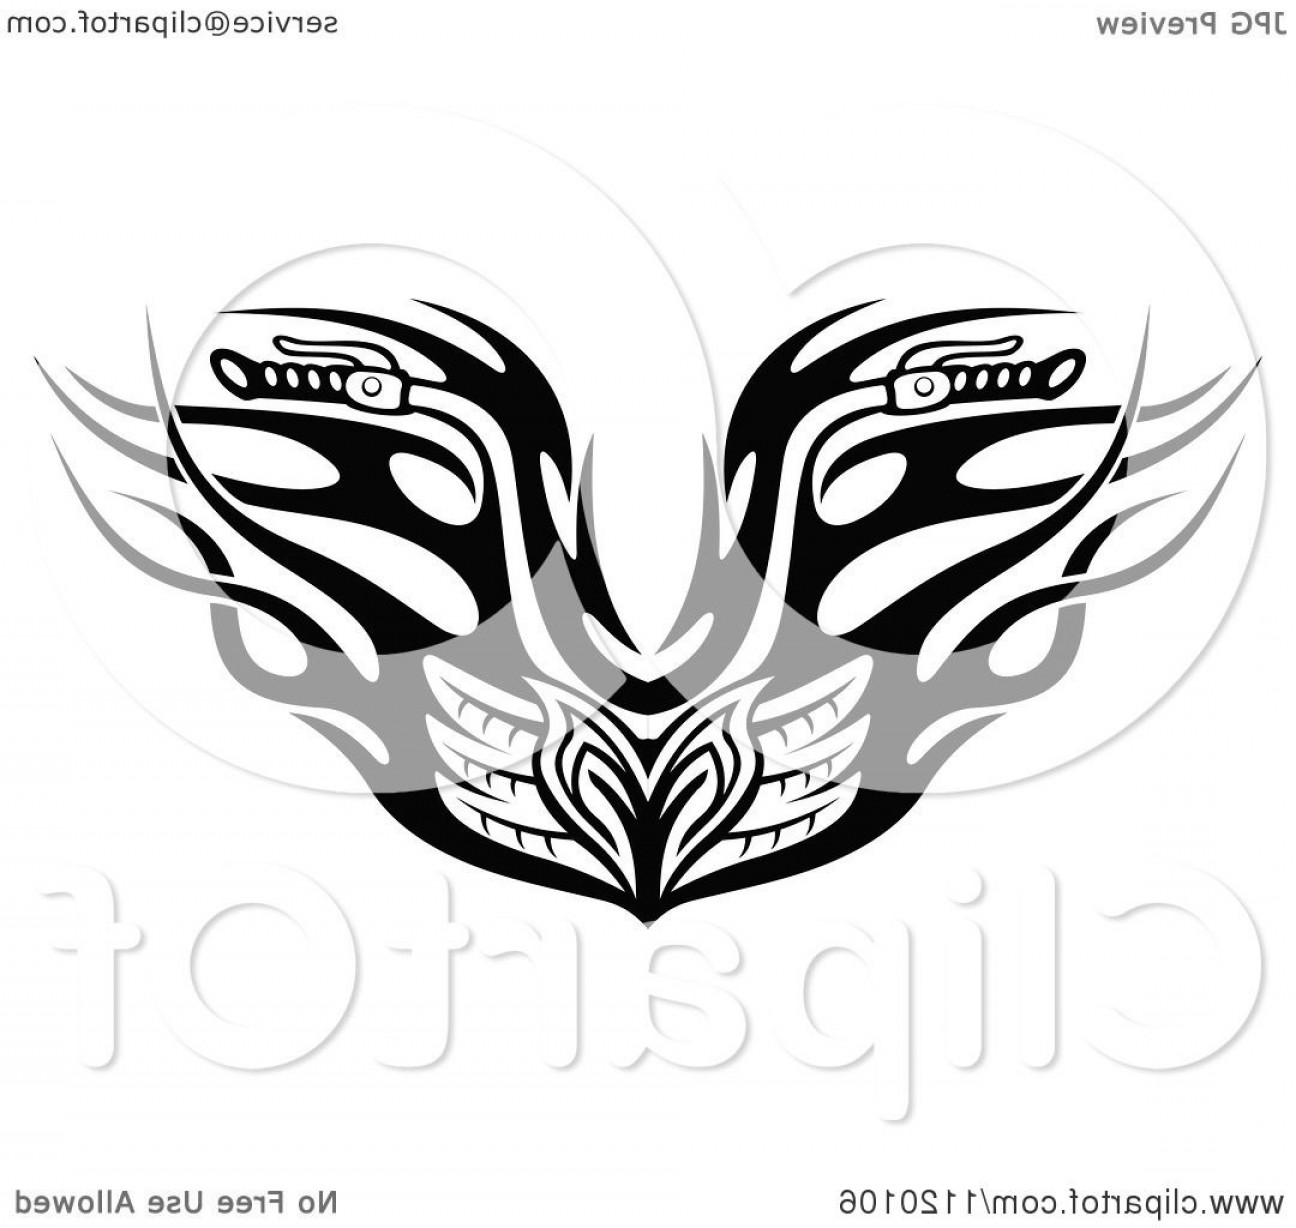 Harley -Davidson Skull Logo Vector: Black And White Tribal Flaming Motorcycle Biker Handlebars